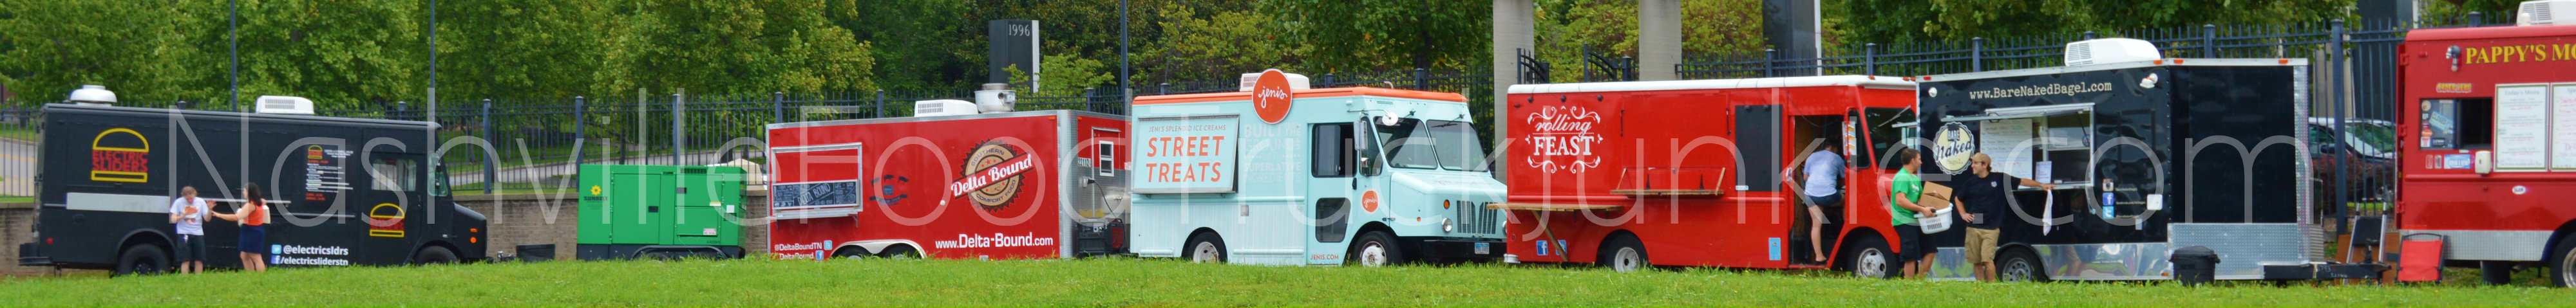 The Steaming Goat Food Truck